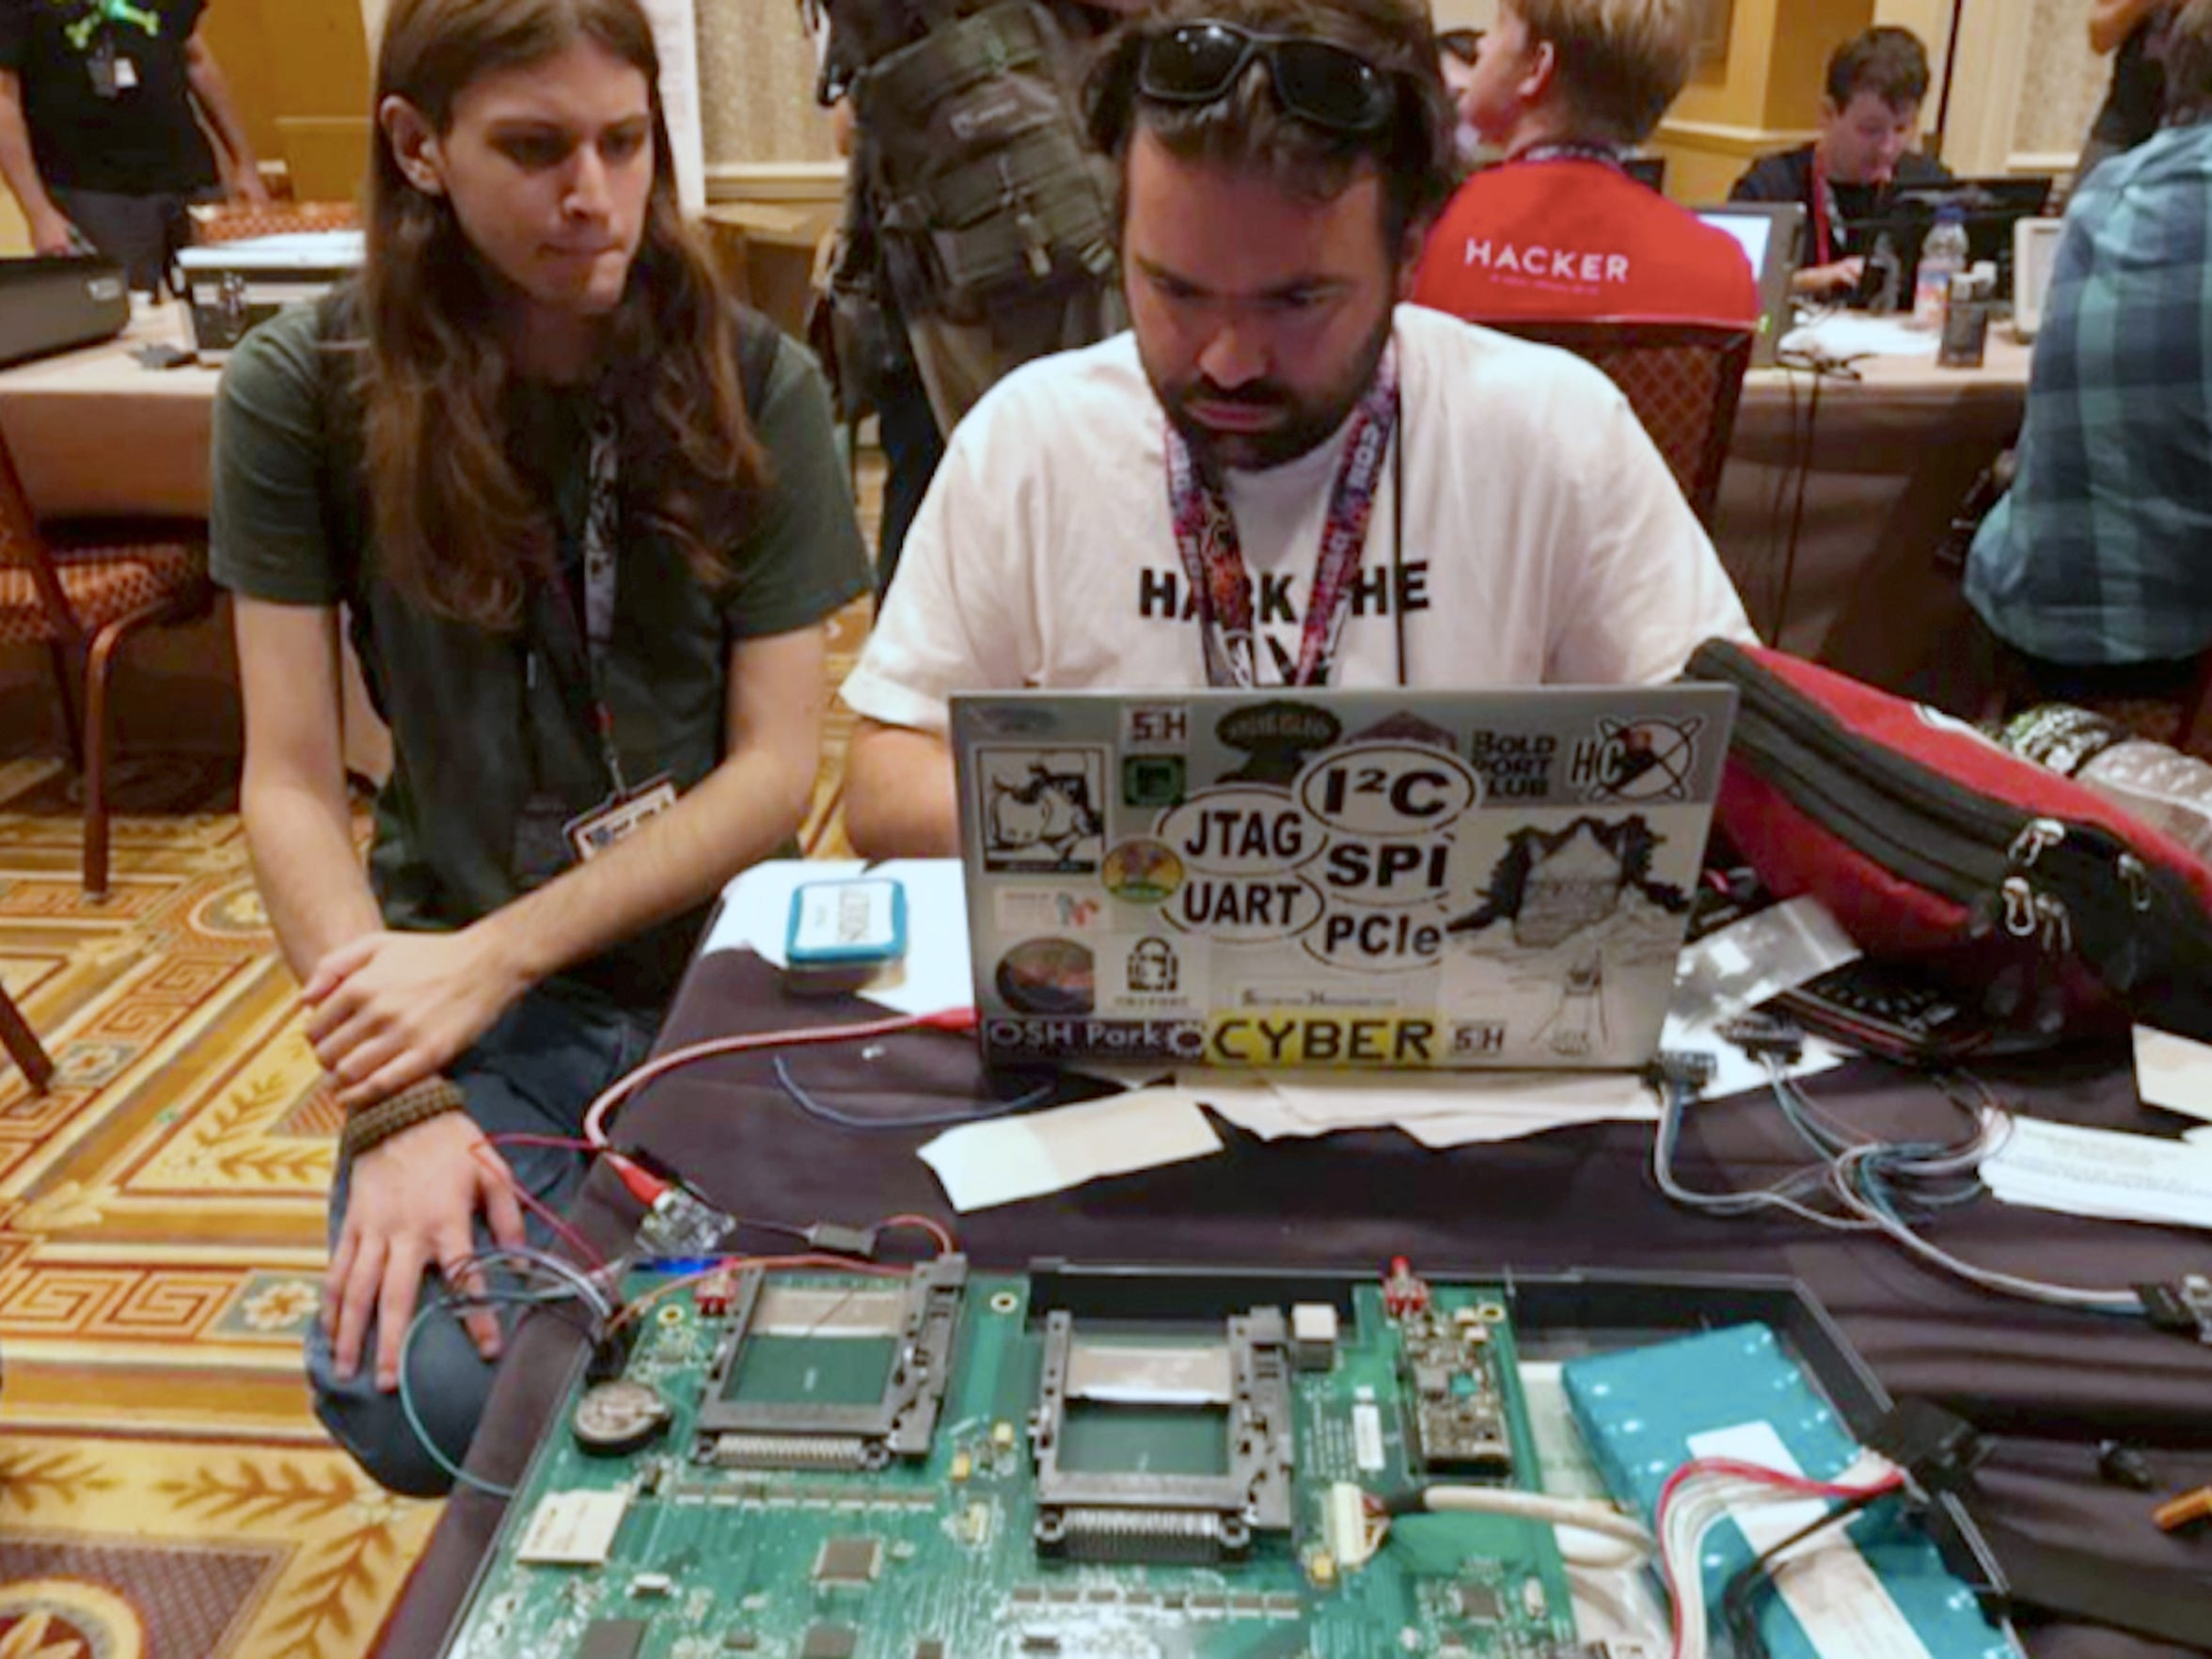 At the Voting Machine Hacking Village demonstration